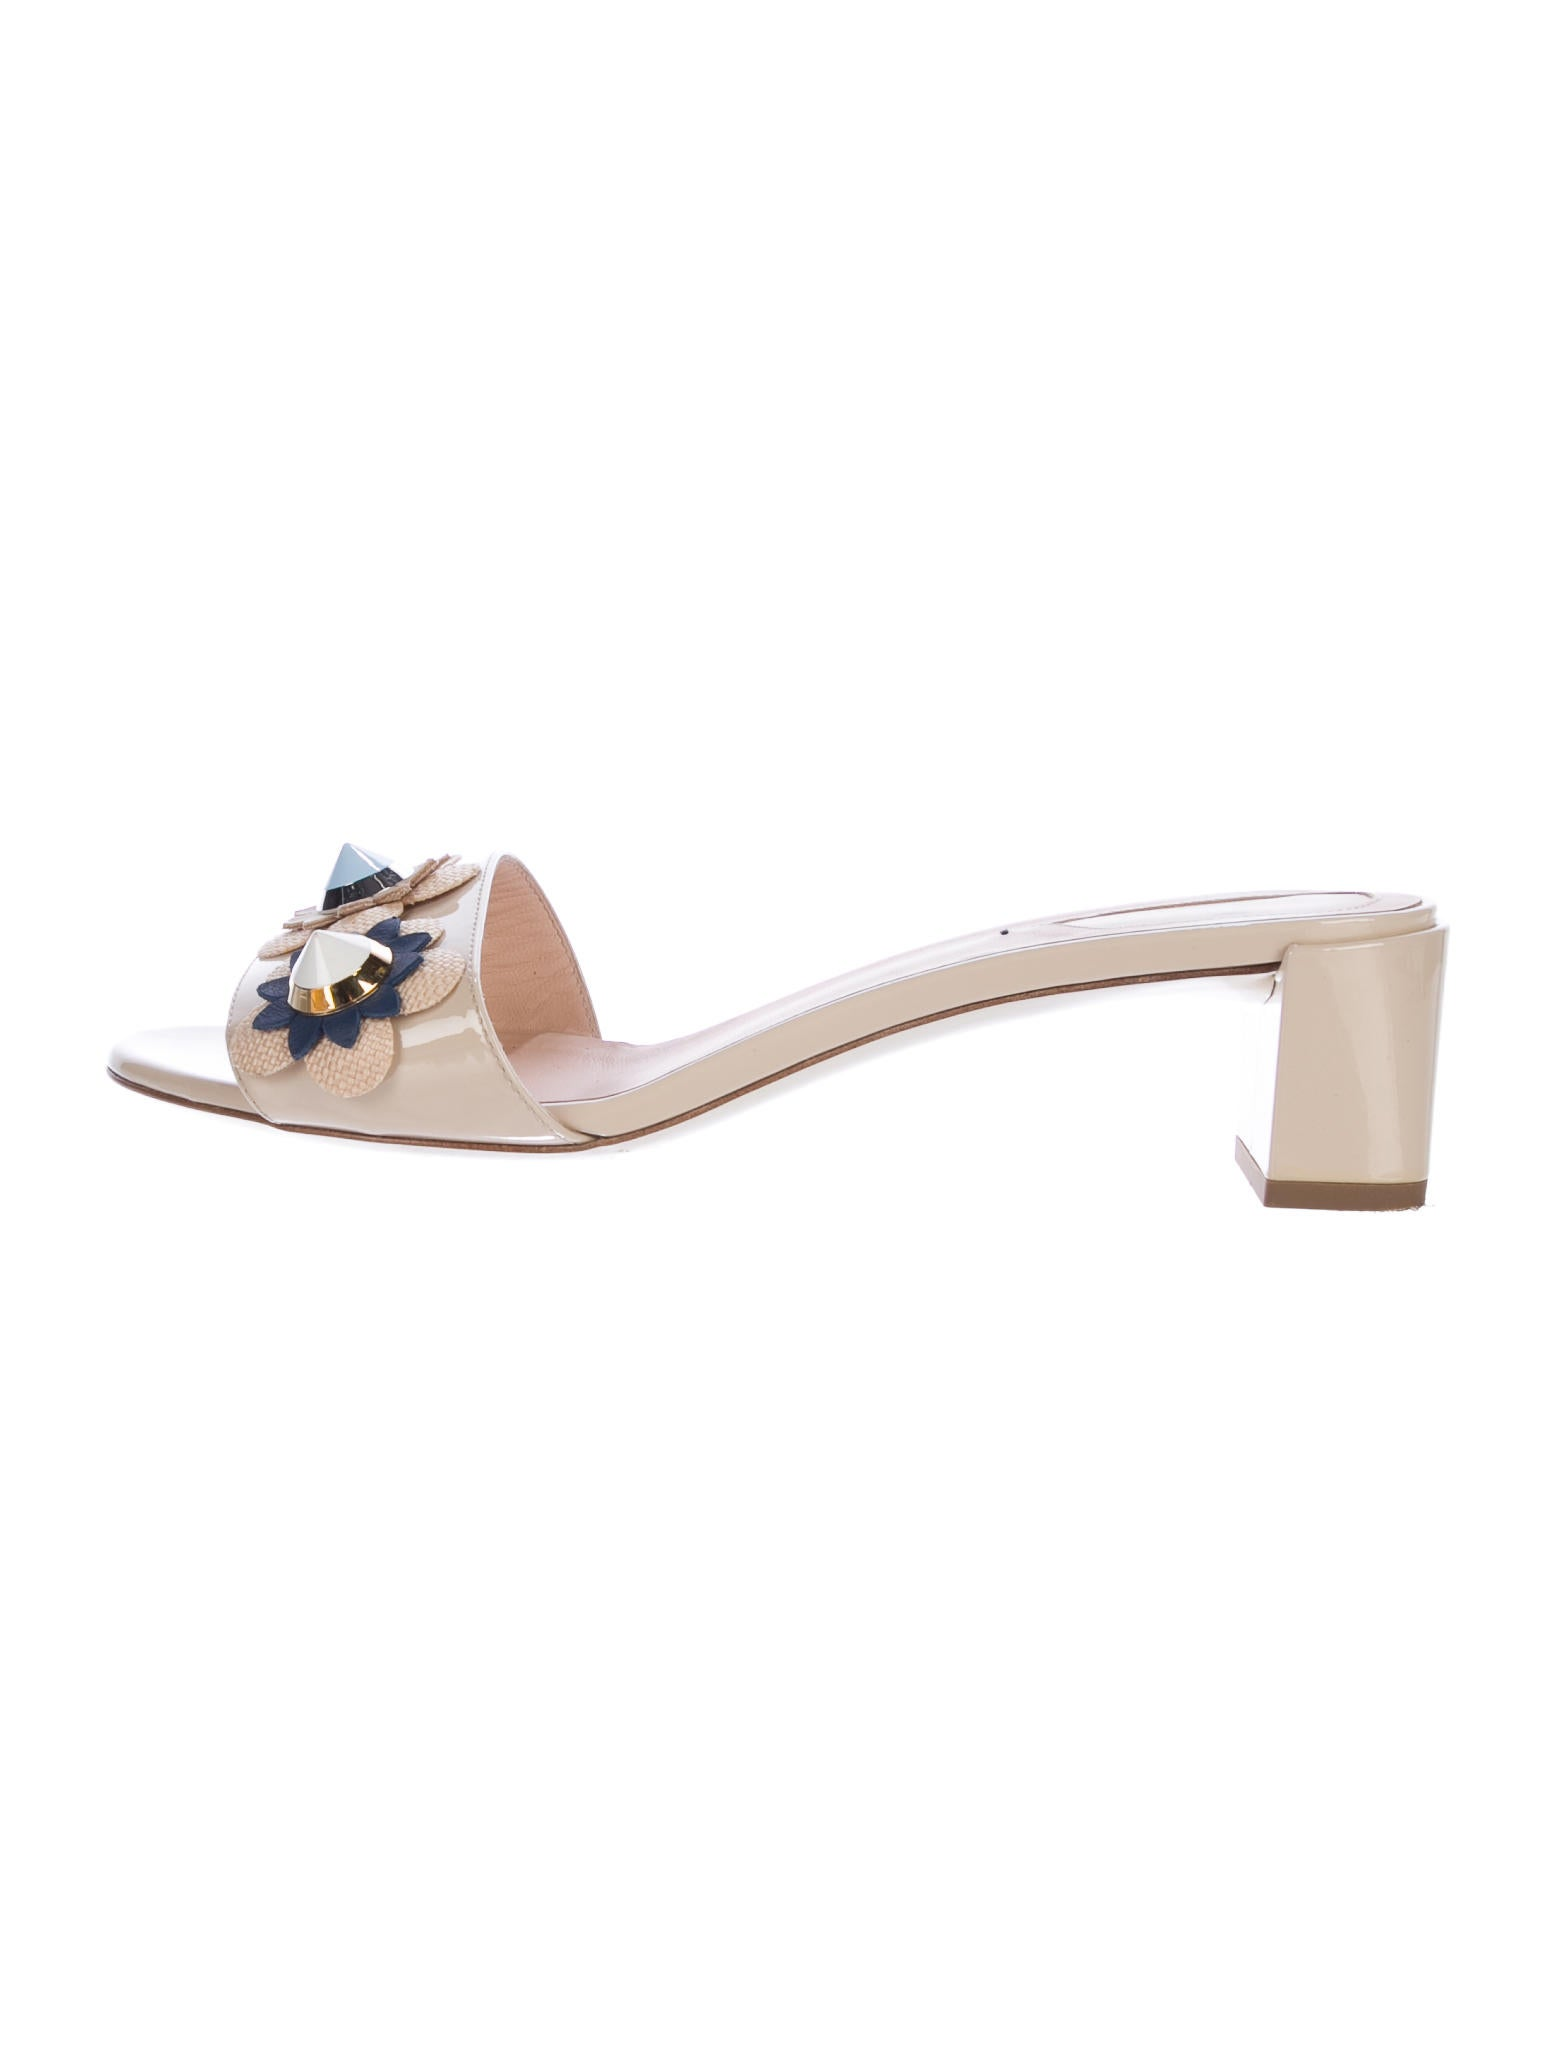 Fendi 2017 Flowerland Slide Sandals discount classic amazon cheap price sale sale online free shipping with credit card where to buy cheap real 1xMsc3Ndc7